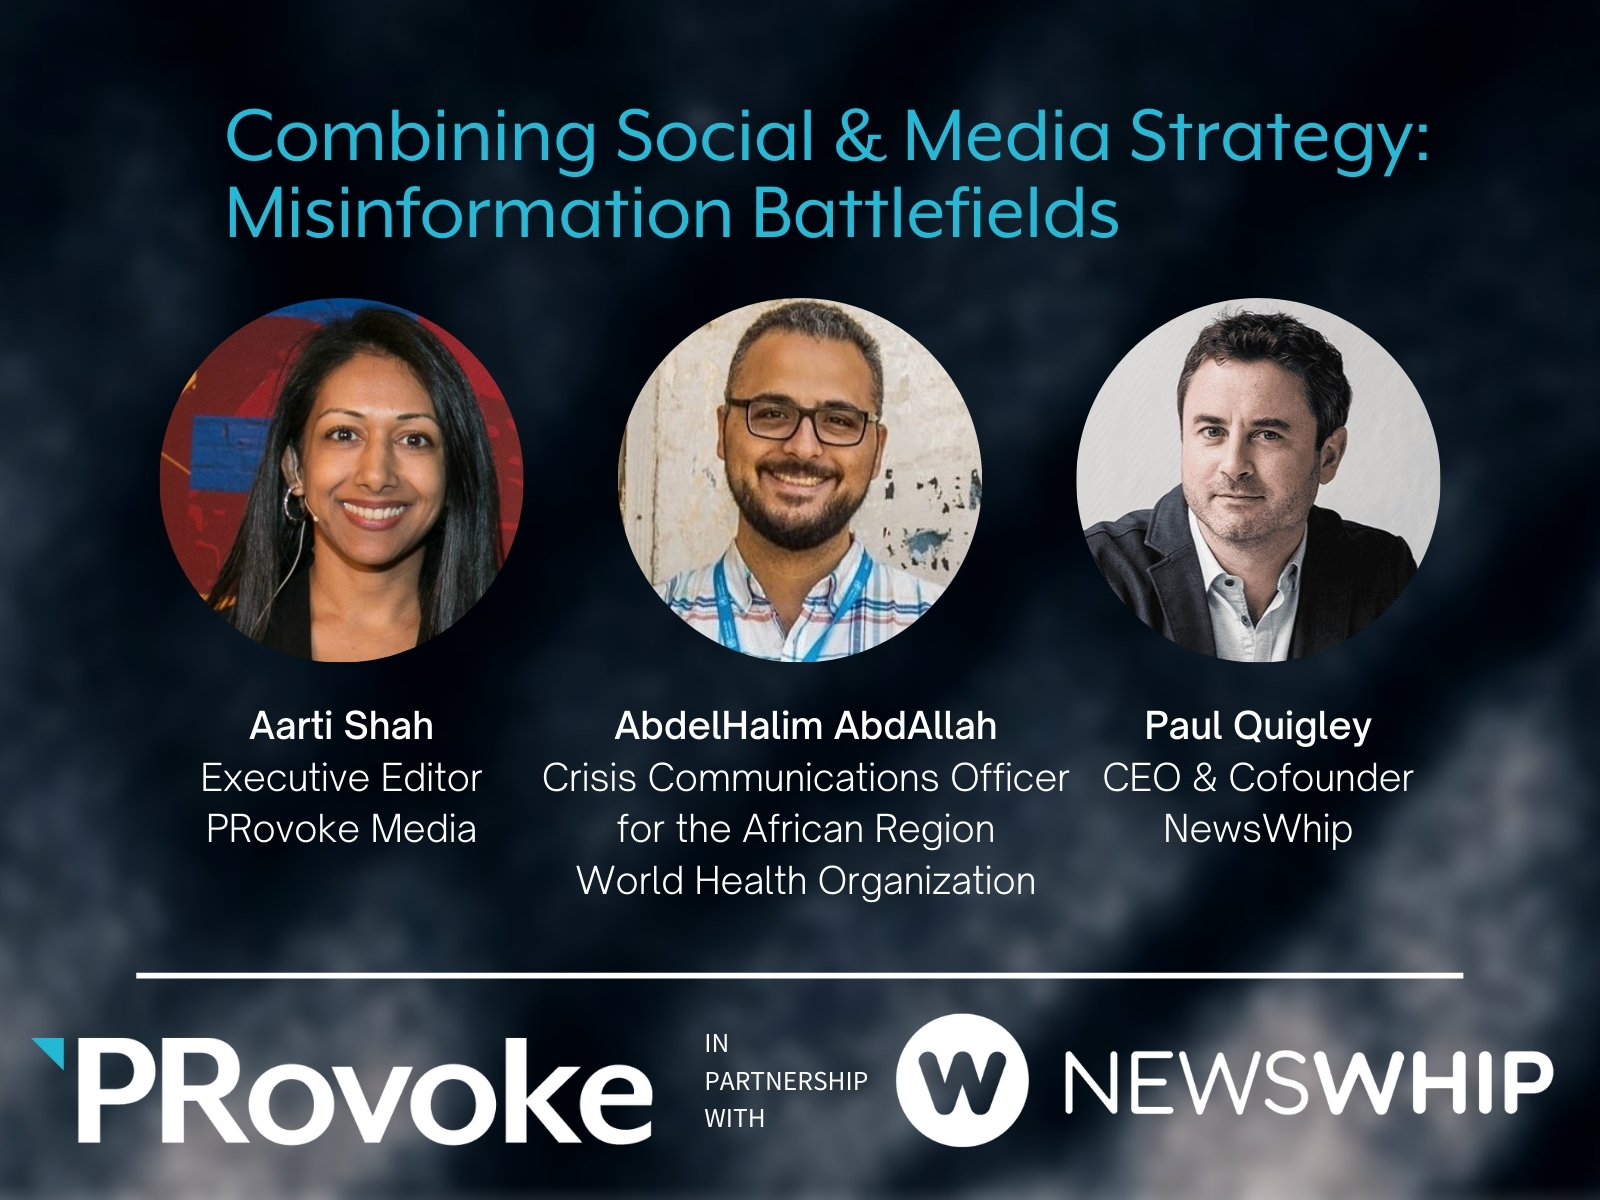 Combining Social & Media Strategy: Misinformation Battlefields with WHO and NewsWhip